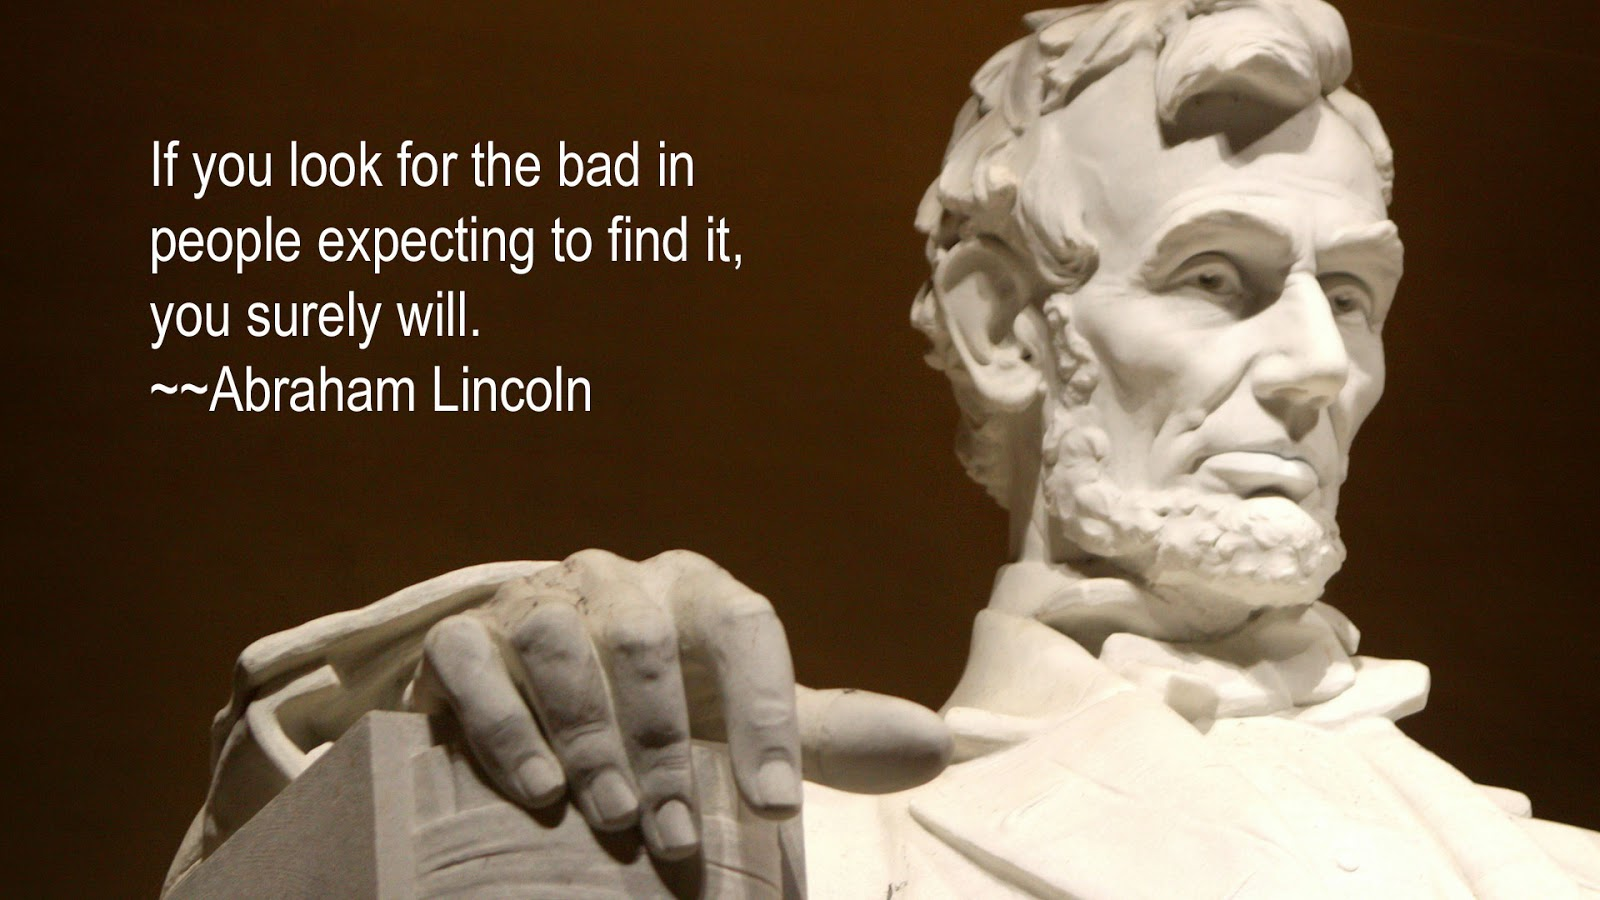 abraham-lincoln-quote.jpg